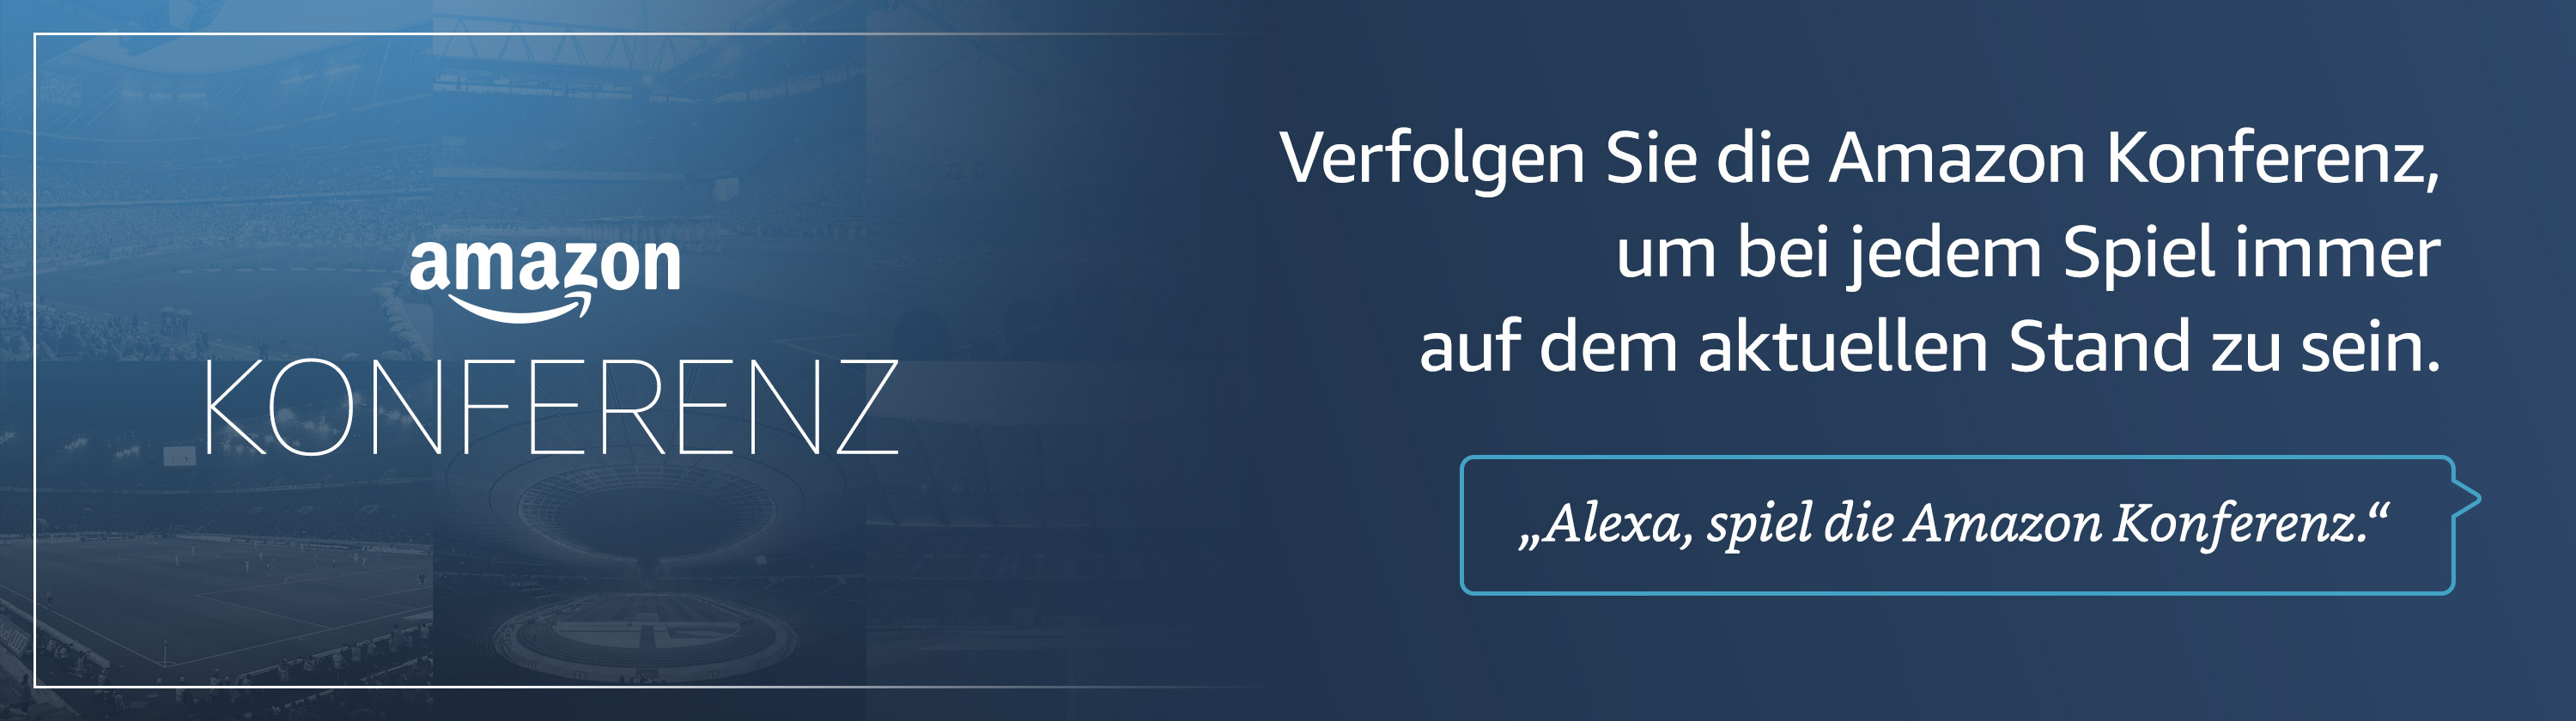 Die Amazon Konferenz